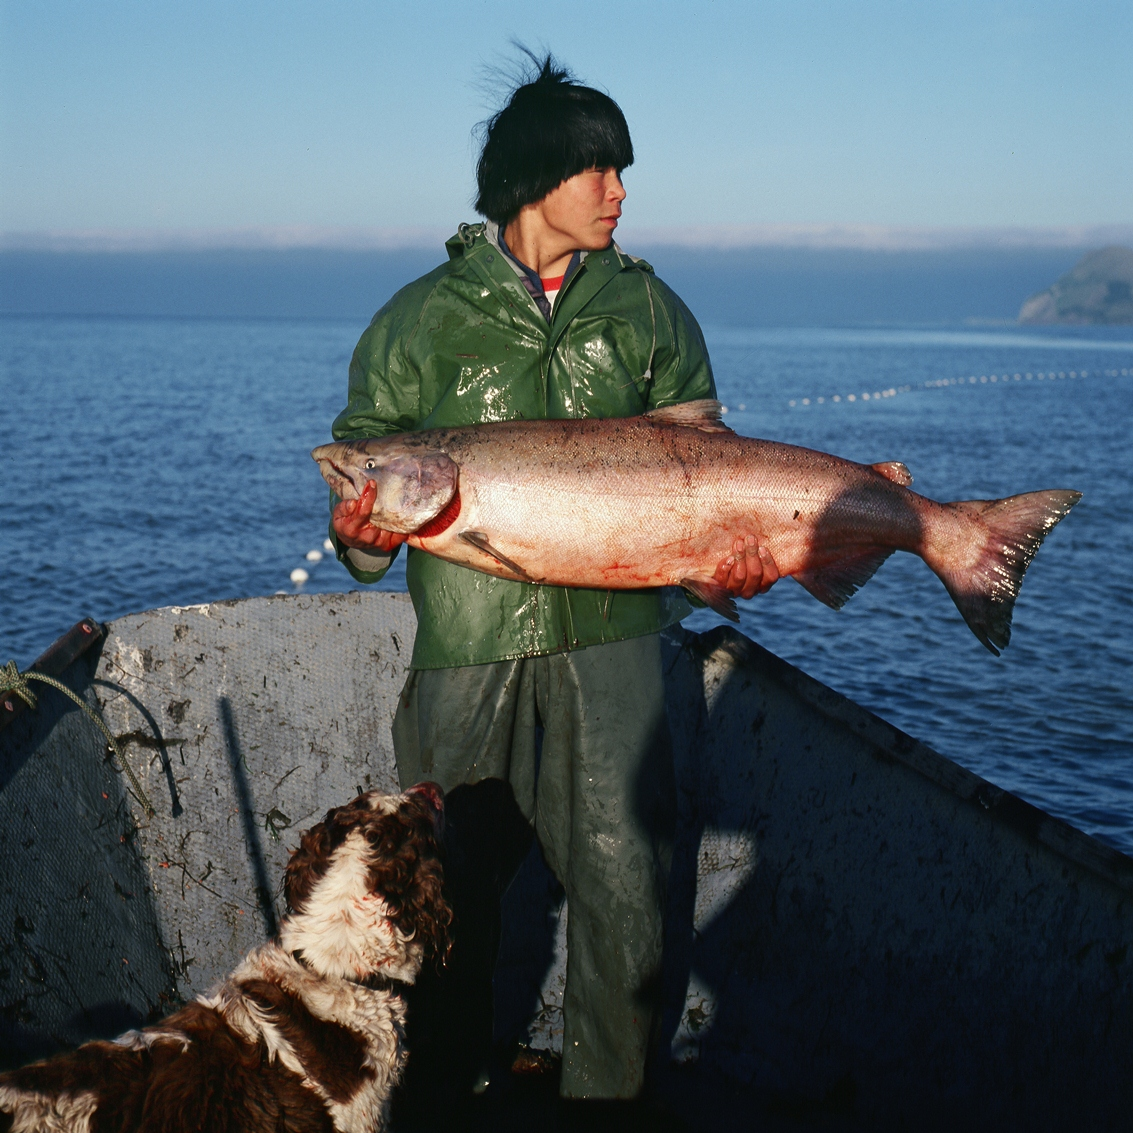 alaskan man with fish